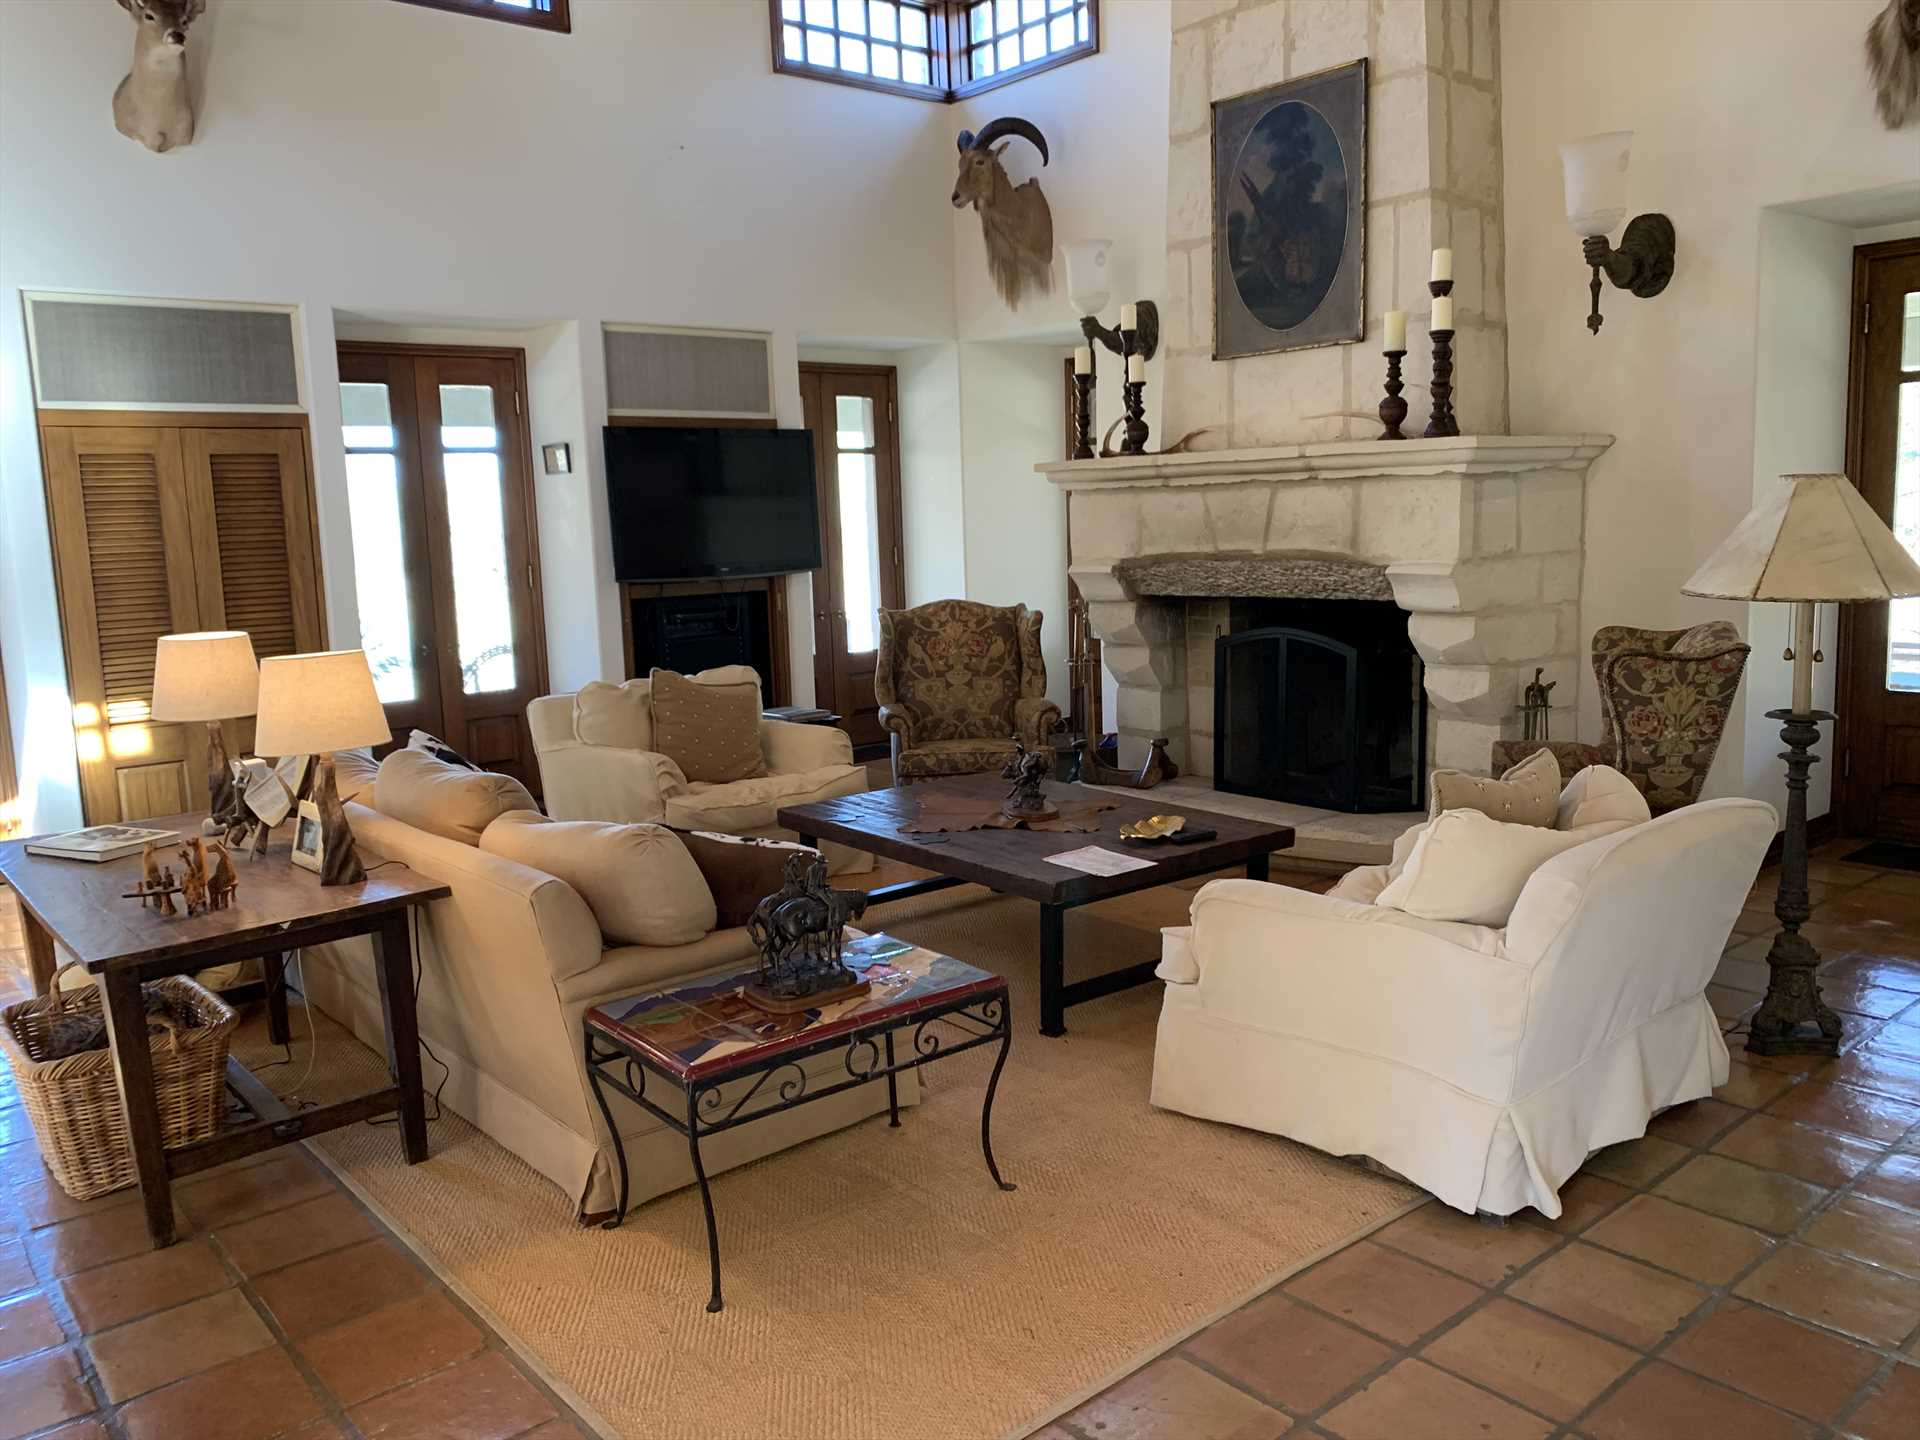 With ultra-high ceilings, comfy furniture, and a huge stone fireplace, the Homestead conveys a country castle vibe.